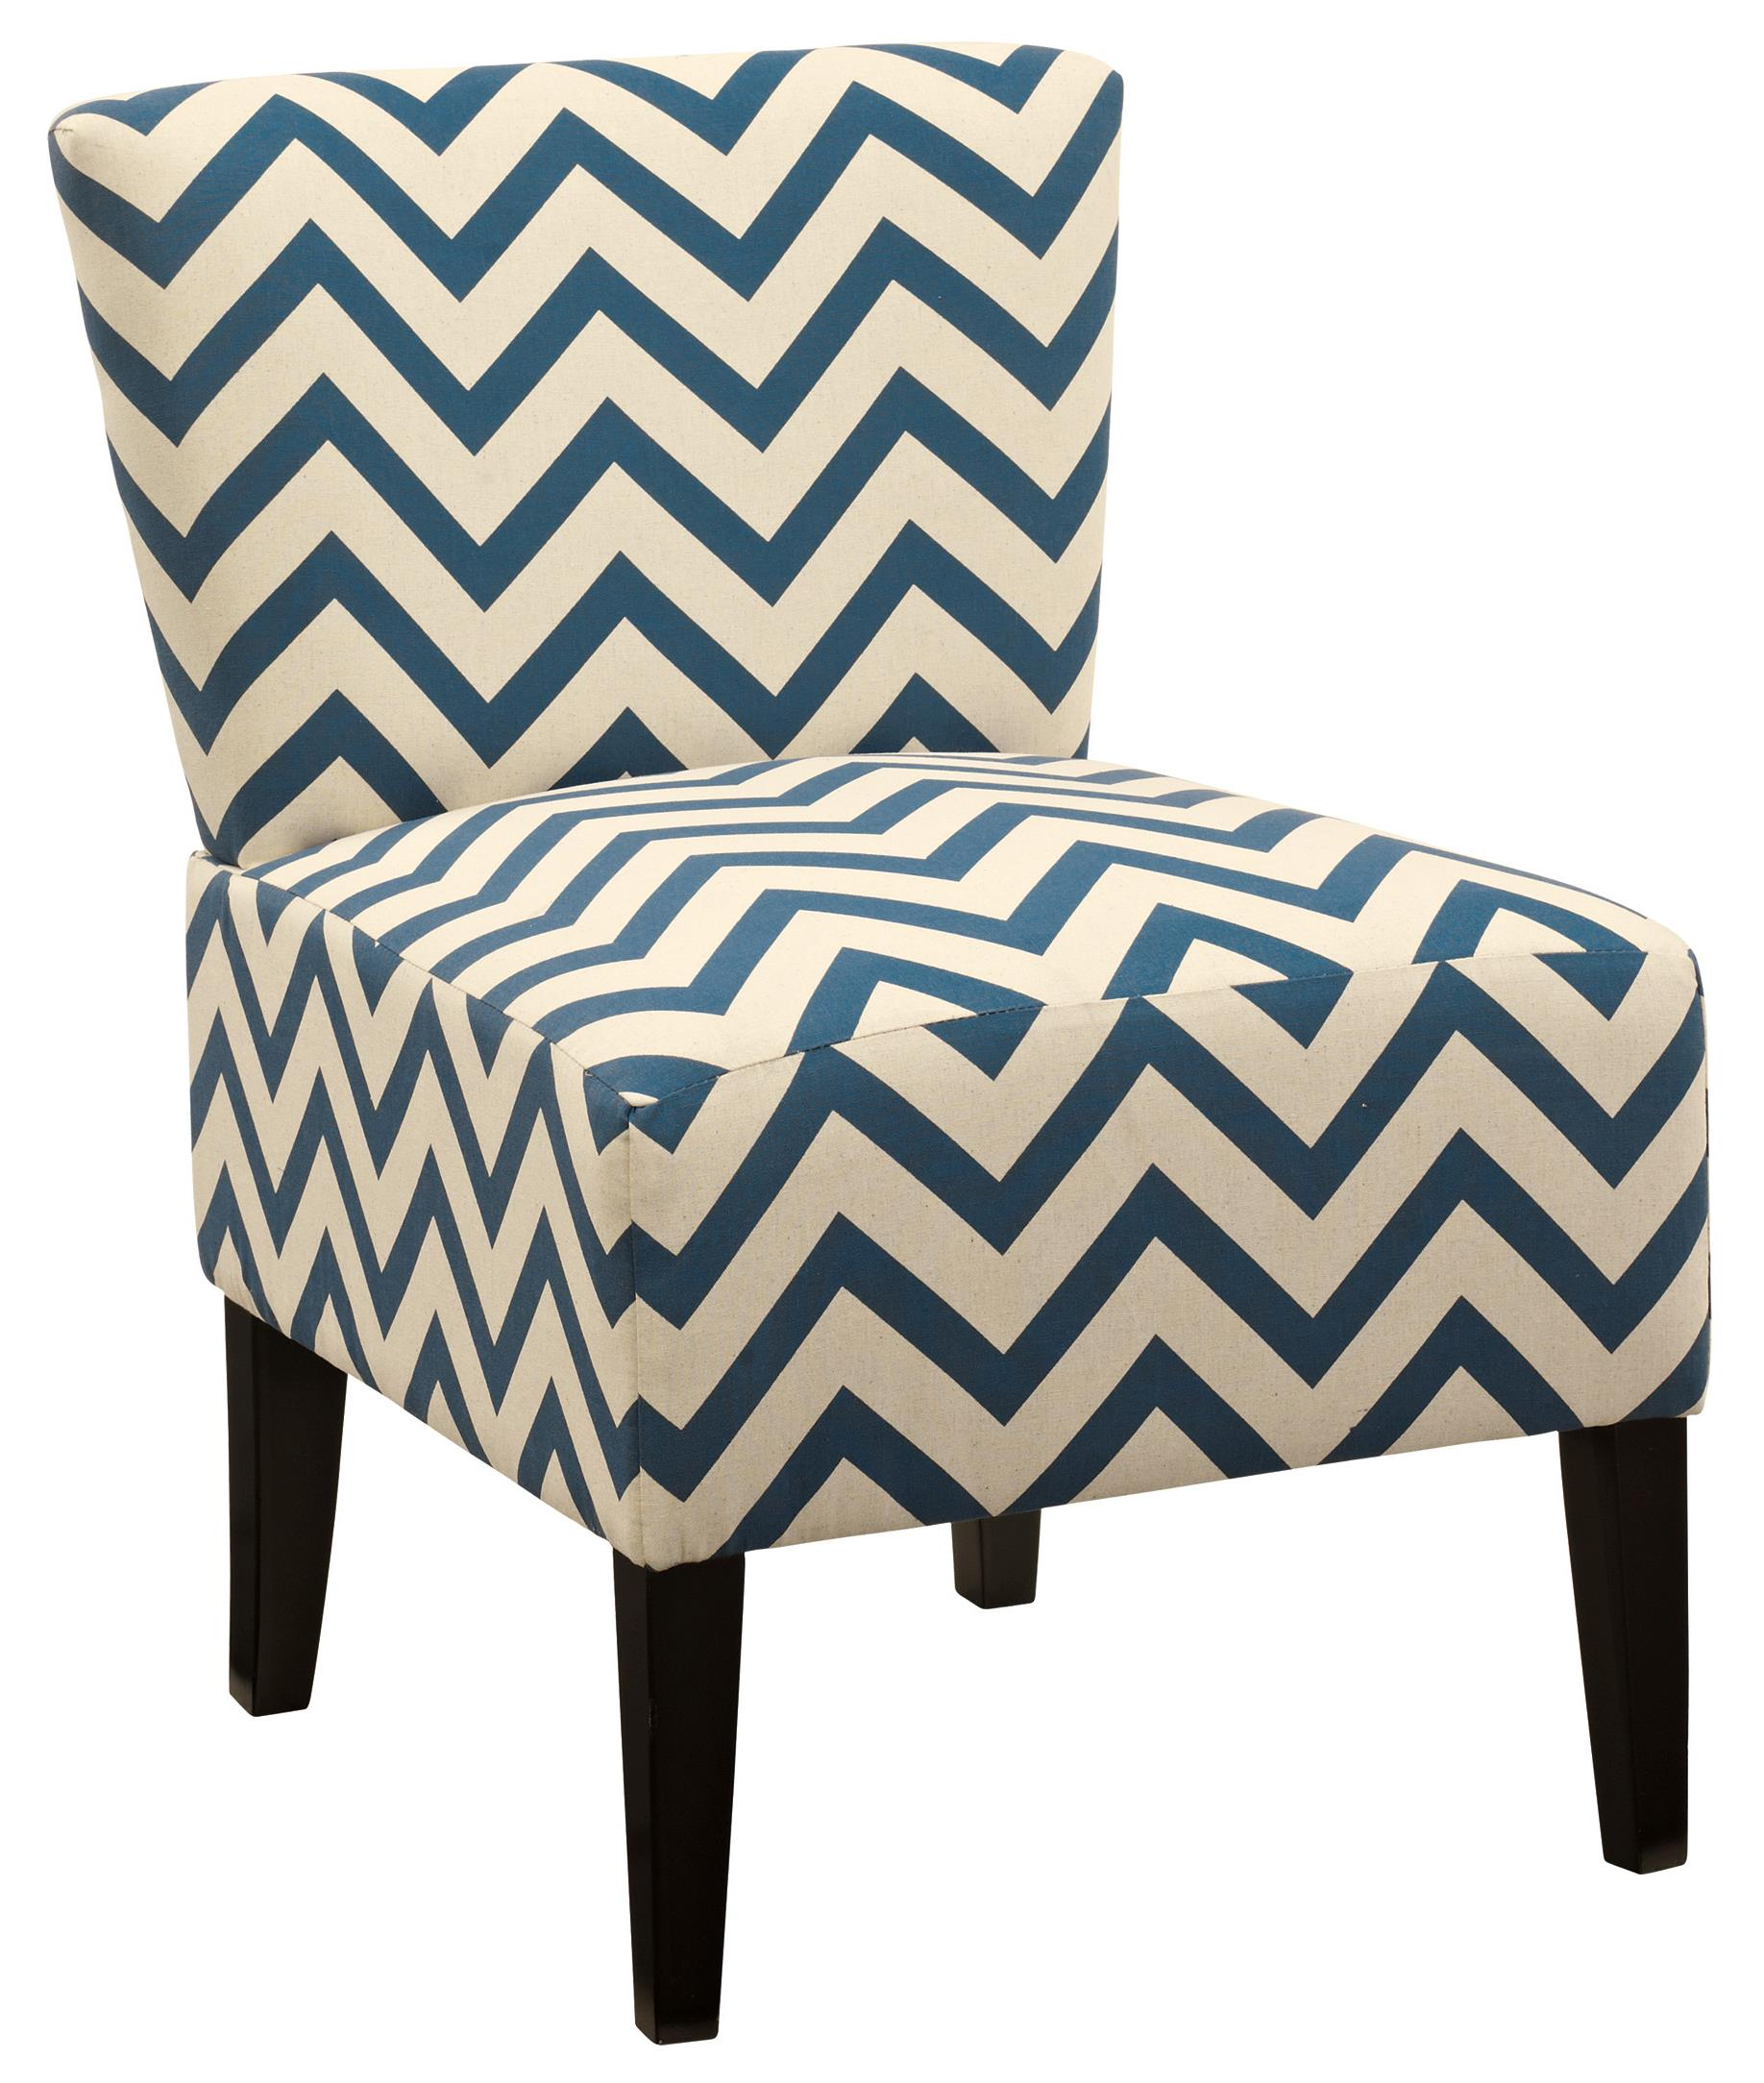 Signature Design by Ashley Ravity Accent Chair - Item Number: 4630260